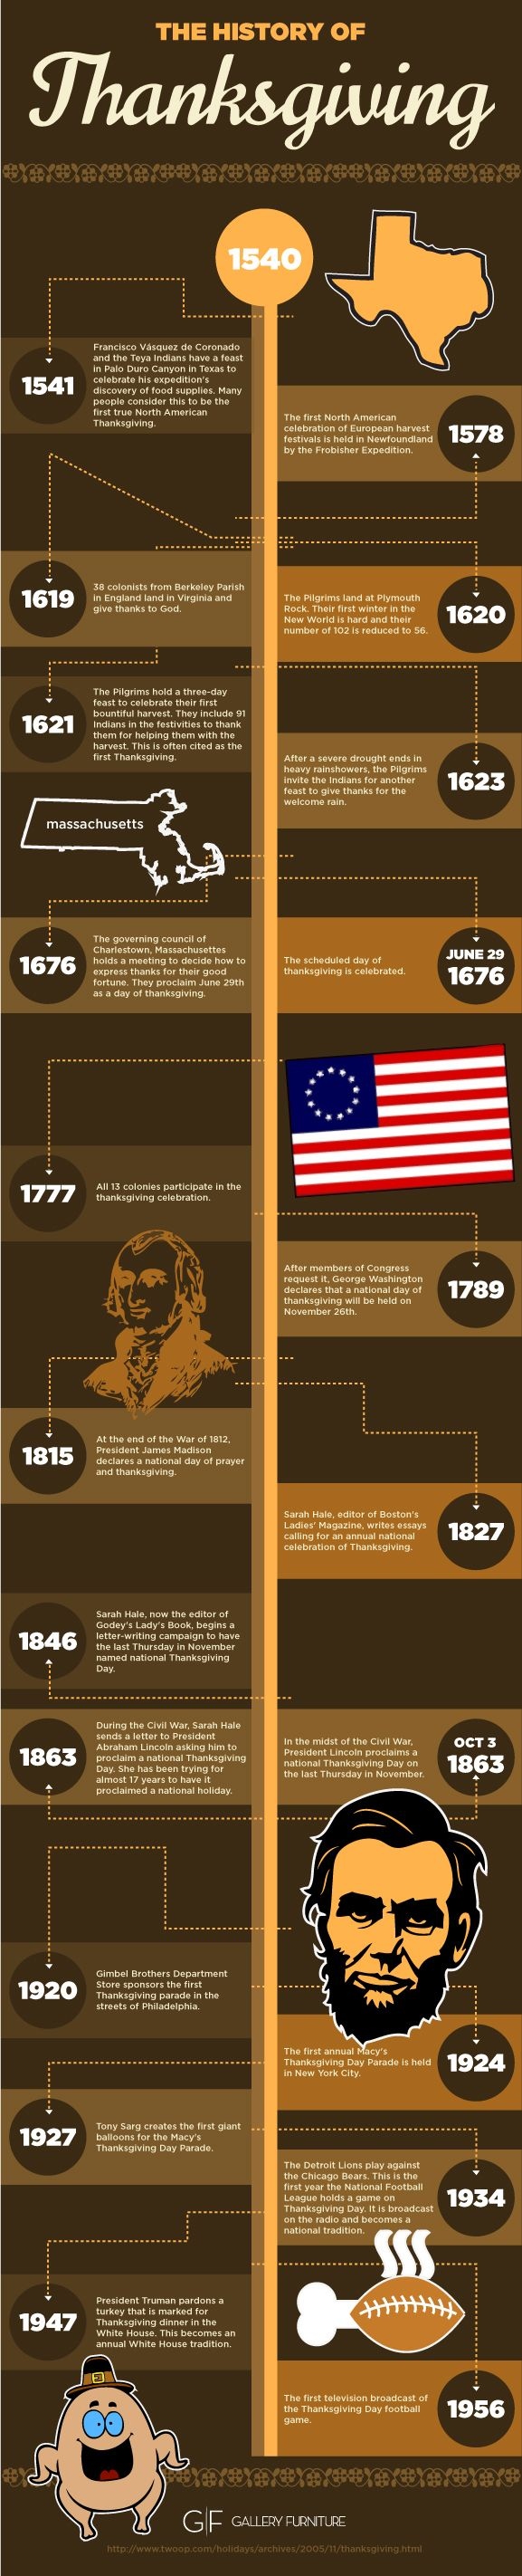 The History of Thanksgiving infographic | Houston TX | Gallery Furniture |